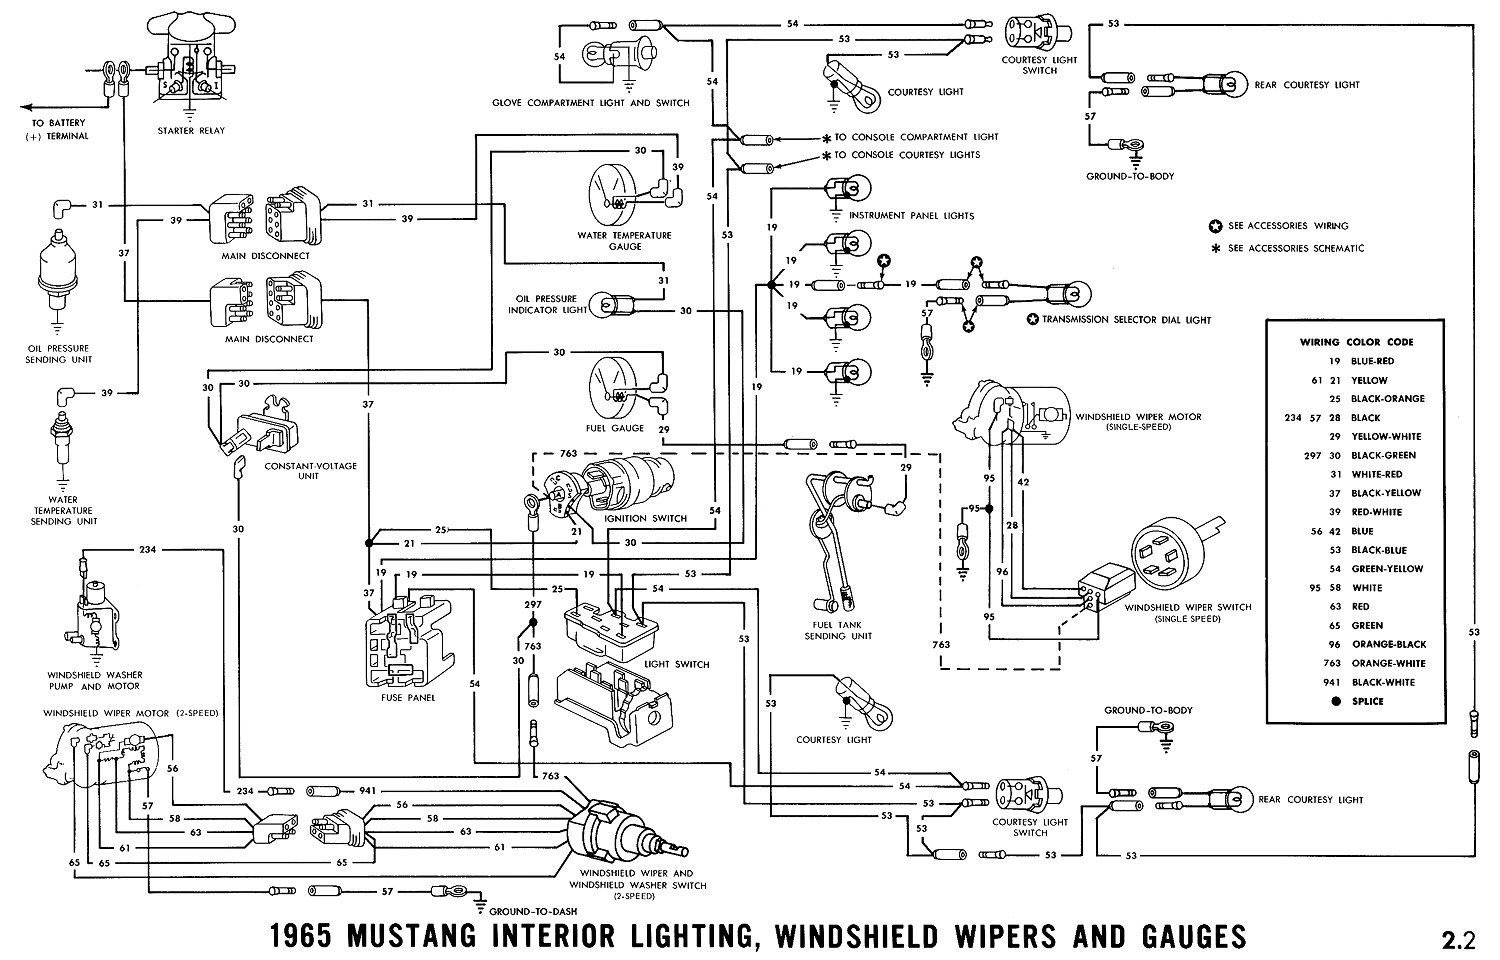 1965 mustang wiring diagrams average joe restoration 1971 chevelle wiring  diagrams free 1971 chevelle wiring diagram